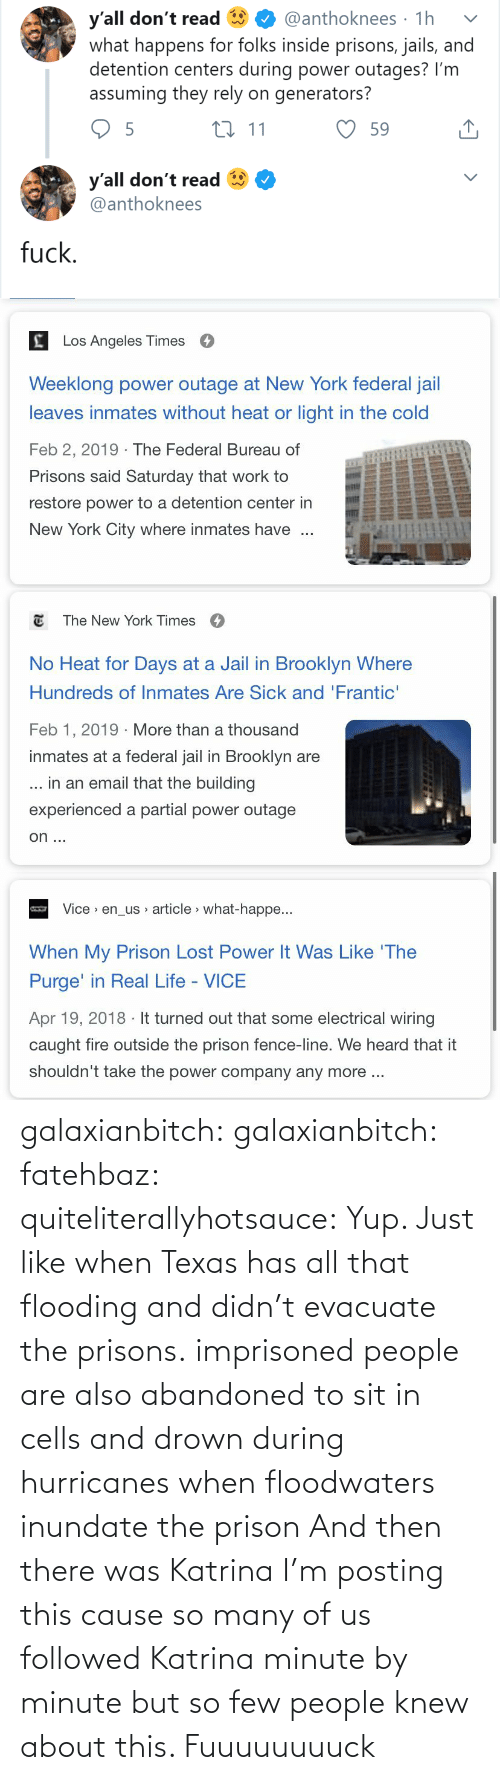 Caught: y'all don't read  what happens for folks inside prisons, jails, and  detention centers during power outages? I'm  assuming they rely on generators?  @anthoknees · 1h  27 11  59  y'all don't read  @anthoknees  fuck.   Los Angeles Times  Weeklong power outage at New York federal jail  leaves inmates without heat or light in the cold  Feb 2, 2019 · The Federal Bureau of  Prisons said Saturday that work to  restore power to a detention center in  New York City where inmates have   E The New York Times  O  No Heat for Days at a Jail in Brooklyn Where  Hundreds of Inmates Are Sick and 'Frantic'  Feb 1, 2019 · More than a thousand  inmates at a federal jail in Brooklyn are  ... in an email that the building  experienced a partial power outage  on ...   Vice > en_us article > what-happe...  When My Prison Lost Power It Was Like 'The  Purge' in Real Life - VICE  Apr 19, 2018 · It turned out that some electrical wiring  caught fire outside the prison fence-line. We heard that it  shouldn't take the power company any more .. galaxianbitch: galaxianbitch:   fatehbaz:  quiteliterallyhotsauce:   Yup. Just like when Texas has all that flooding and didn't evacuate the prisons.   imprisoned people are also abandoned to sit in cells and drown during hurricanes when floodwaters inundate the prison   And then there was Katrina        I'm posting this cause so many of us followed Katrina minute by minute but so few people knew about this.    Fuuuuuuuuck